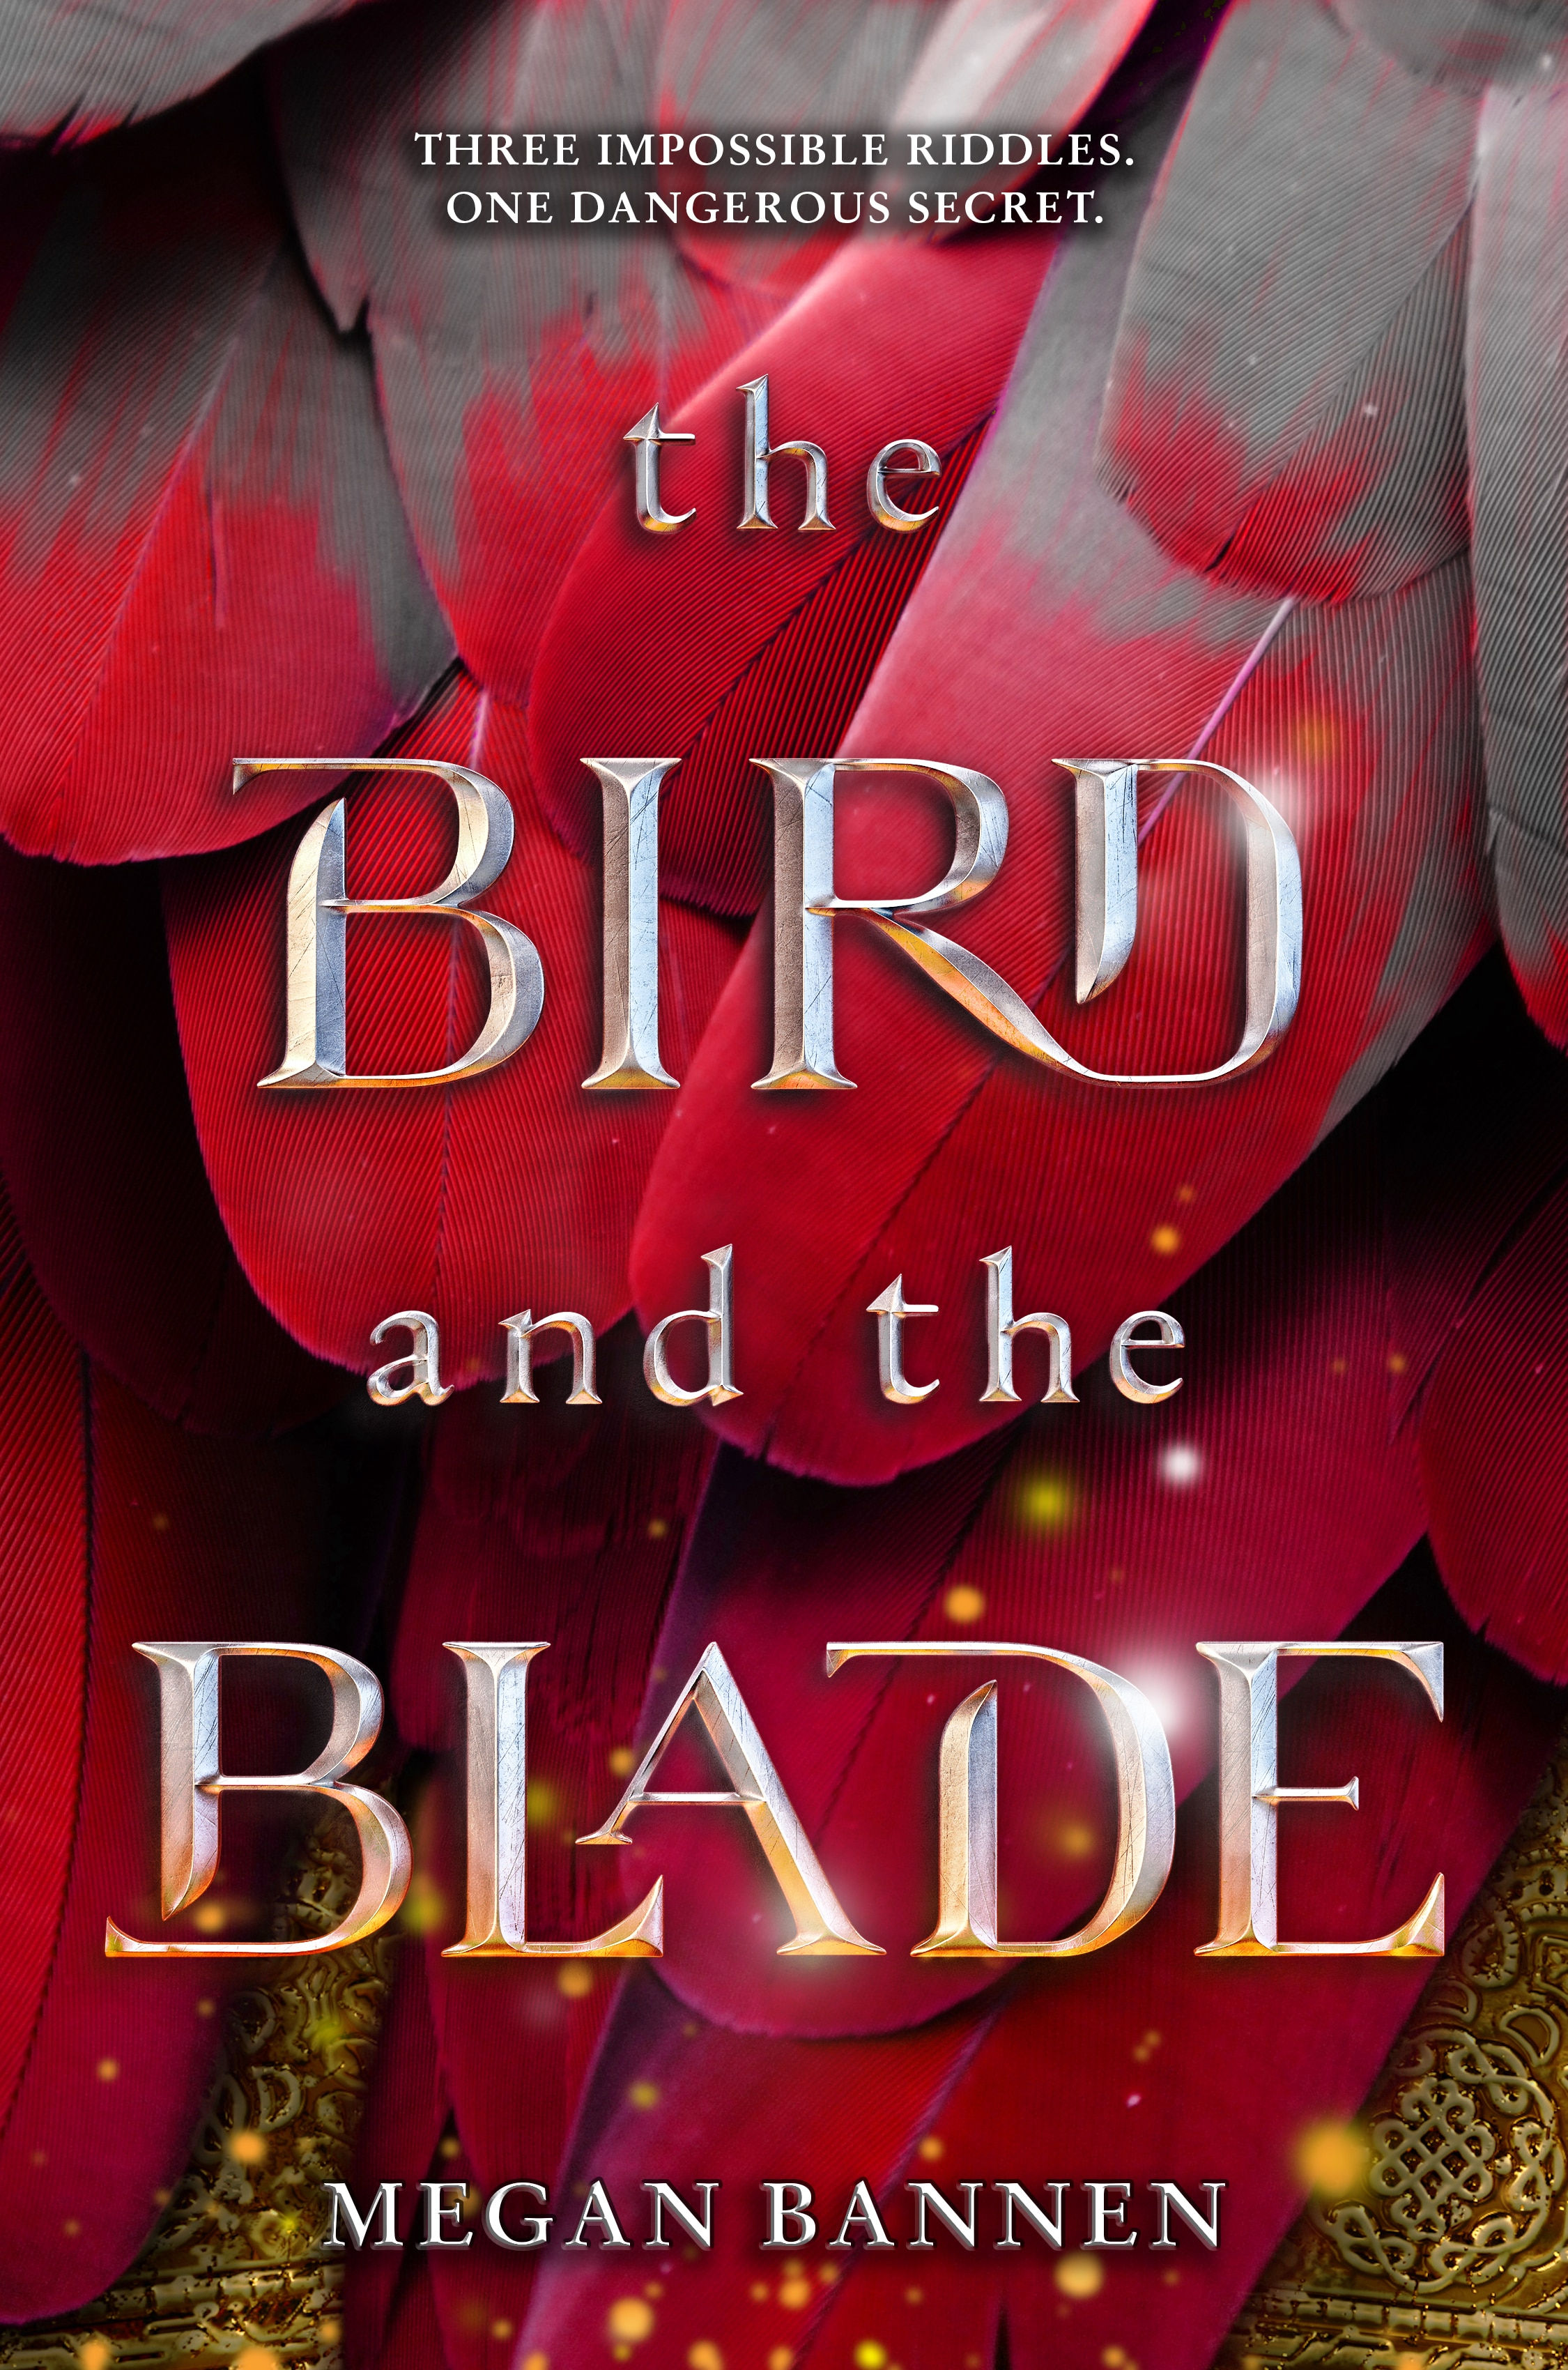 An Intricate Riddle of Its Own | The Bird and the Blade by Megan Bannen